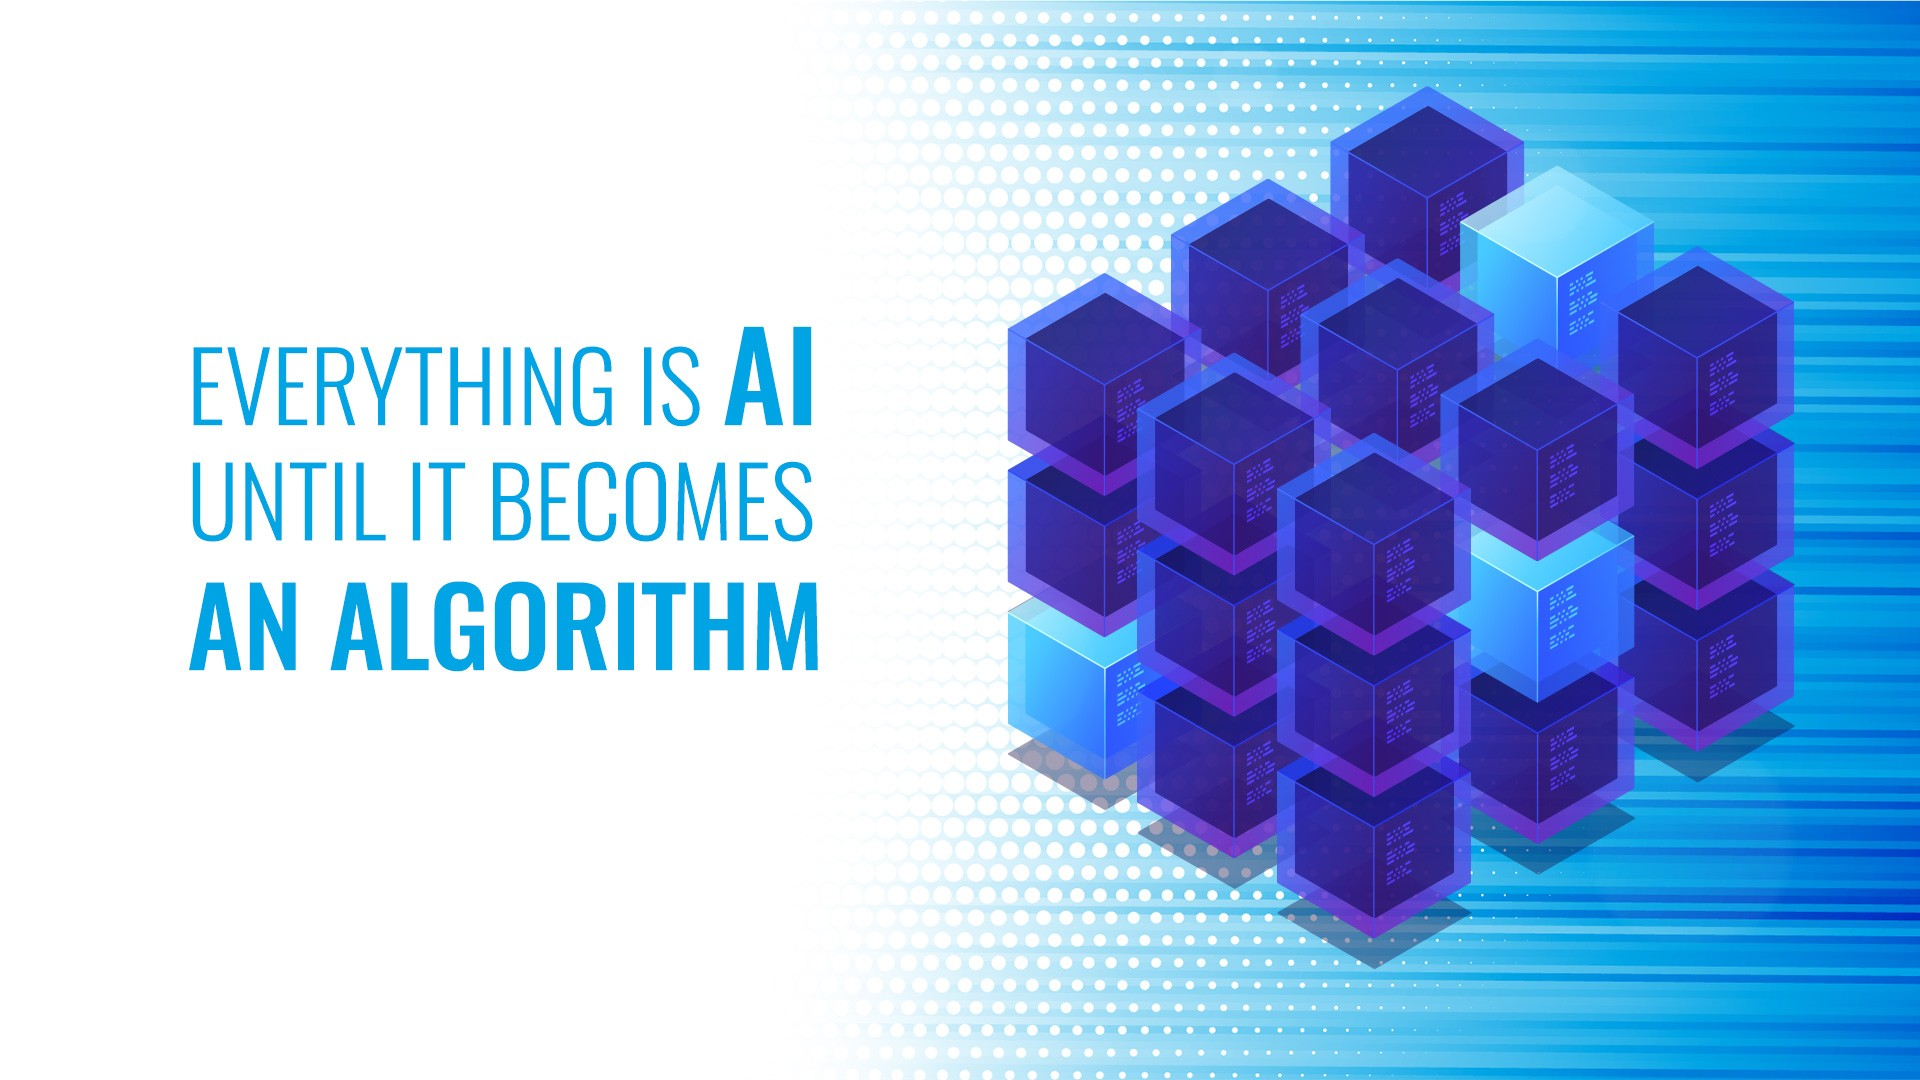 Everything is AI until it becomes an algorithm